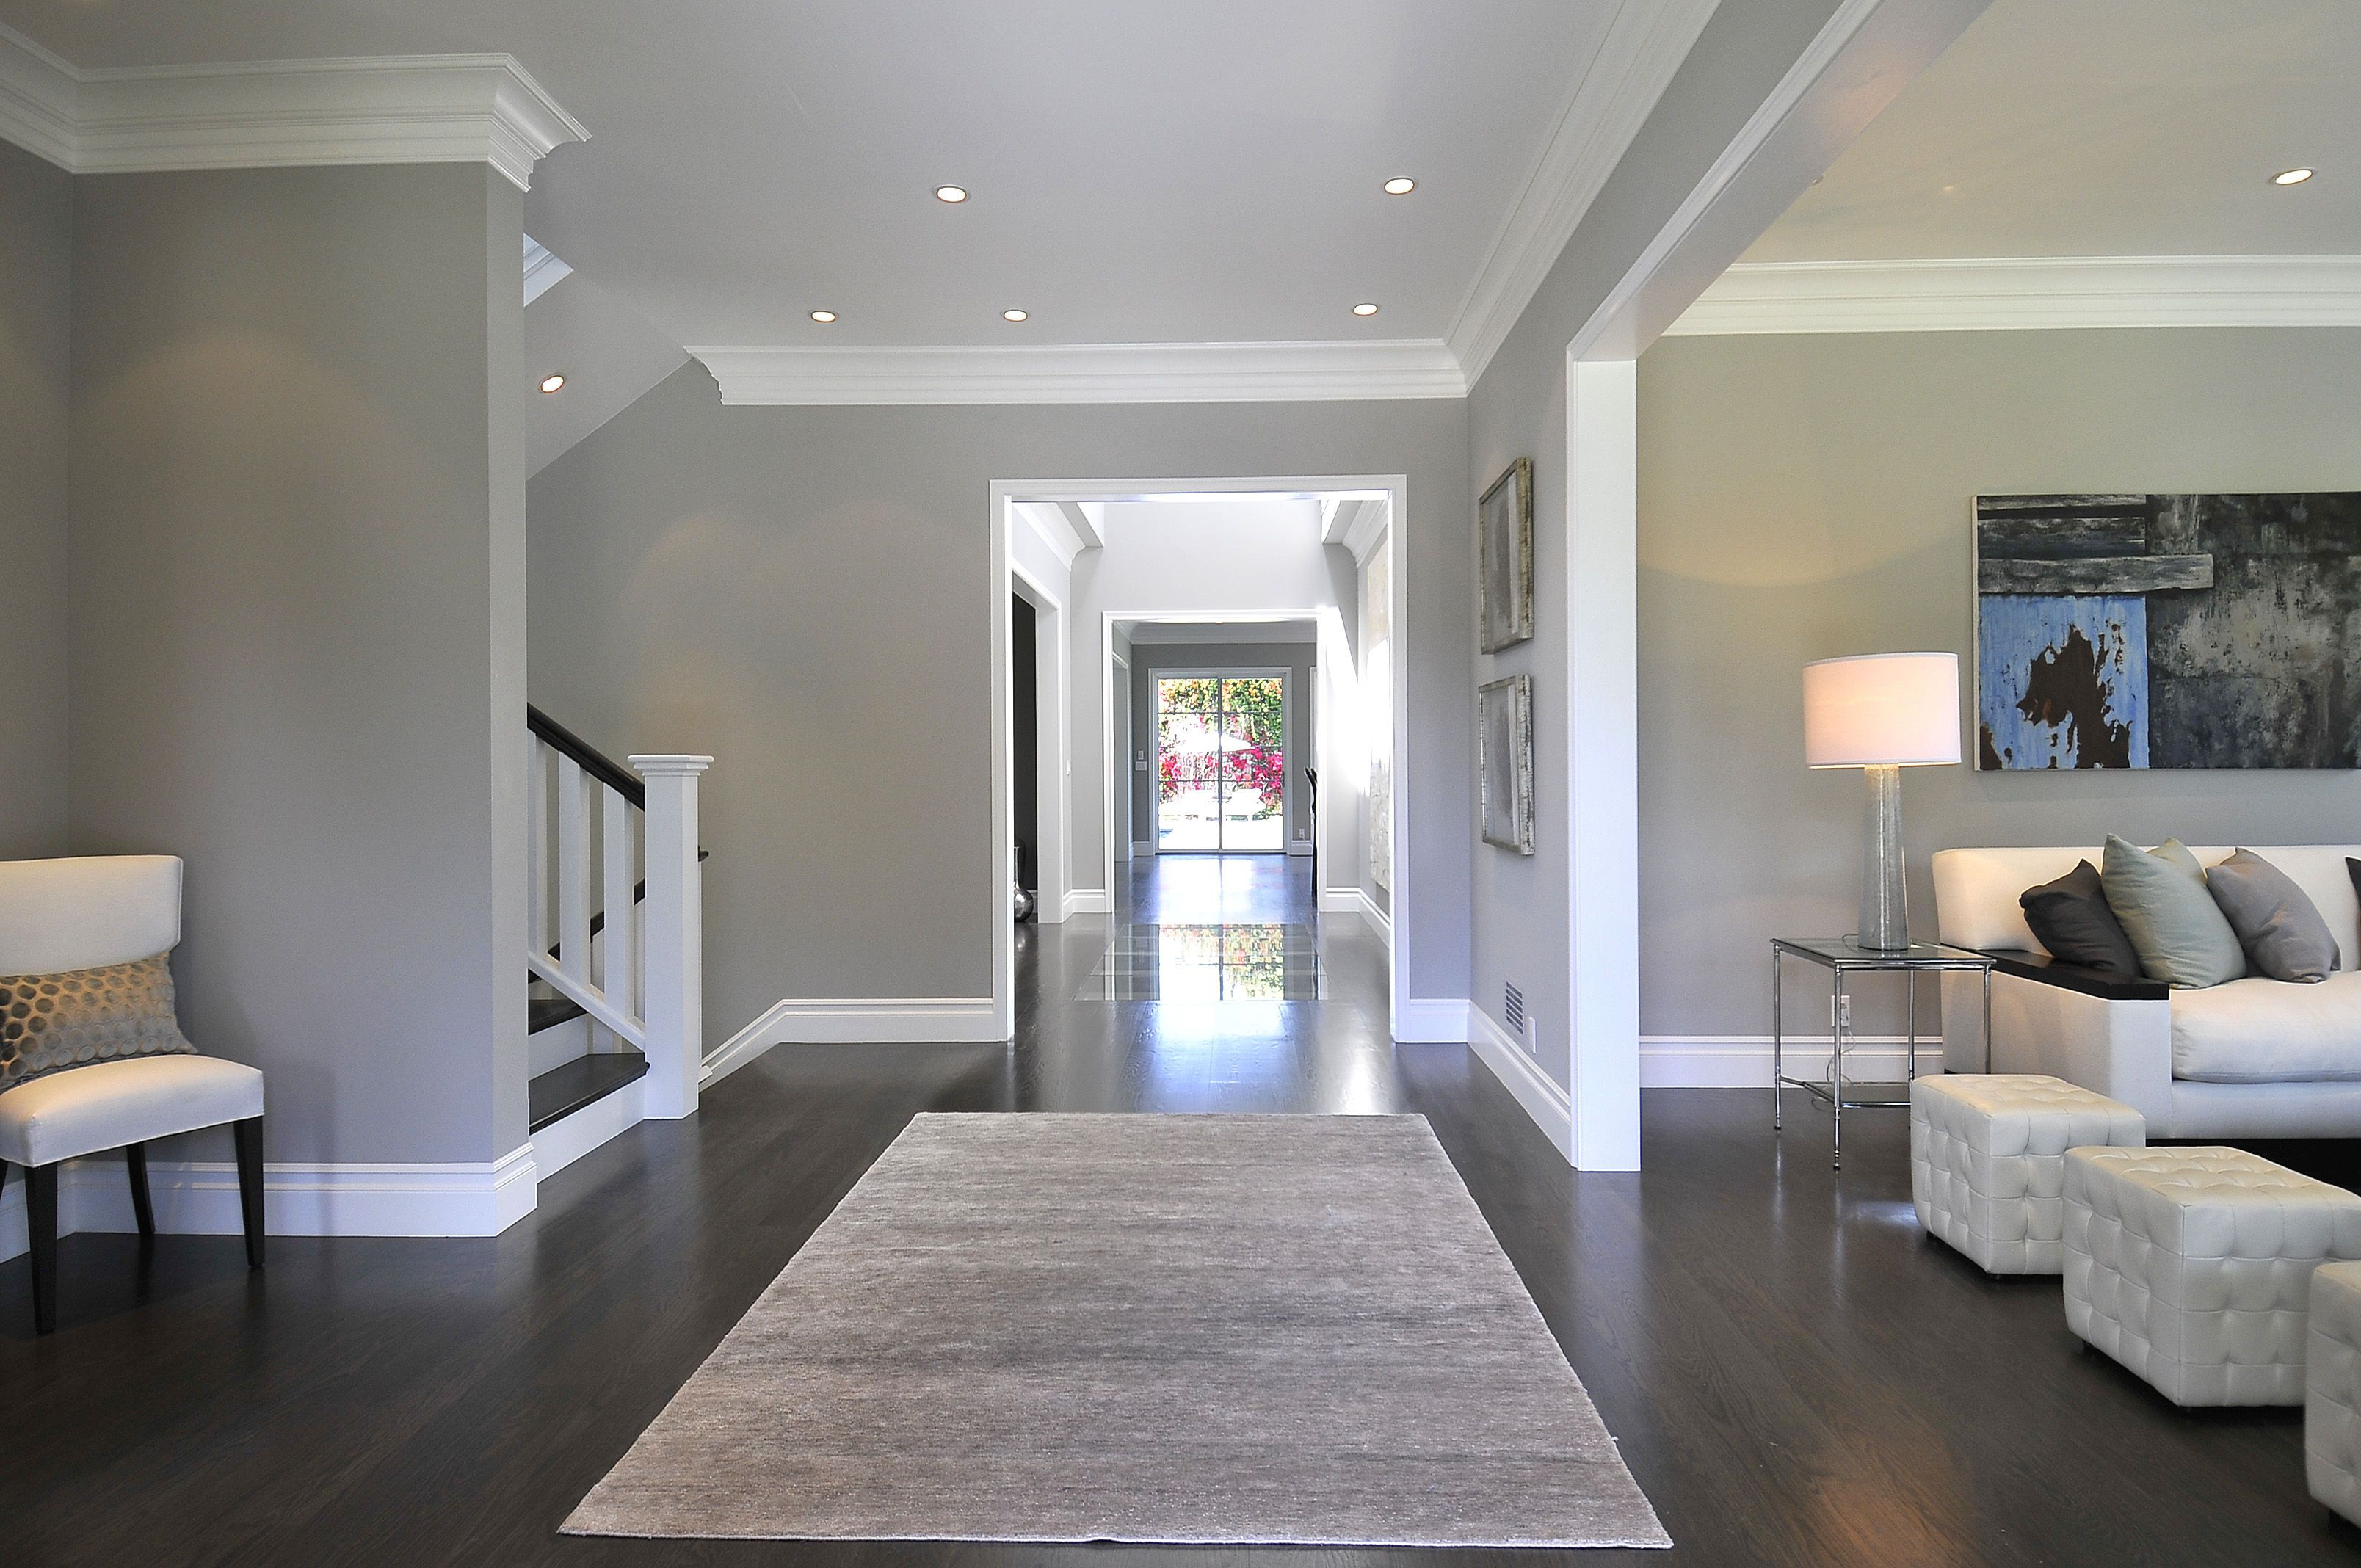 gray walls with dark wood floors - Google Search | Dream ...